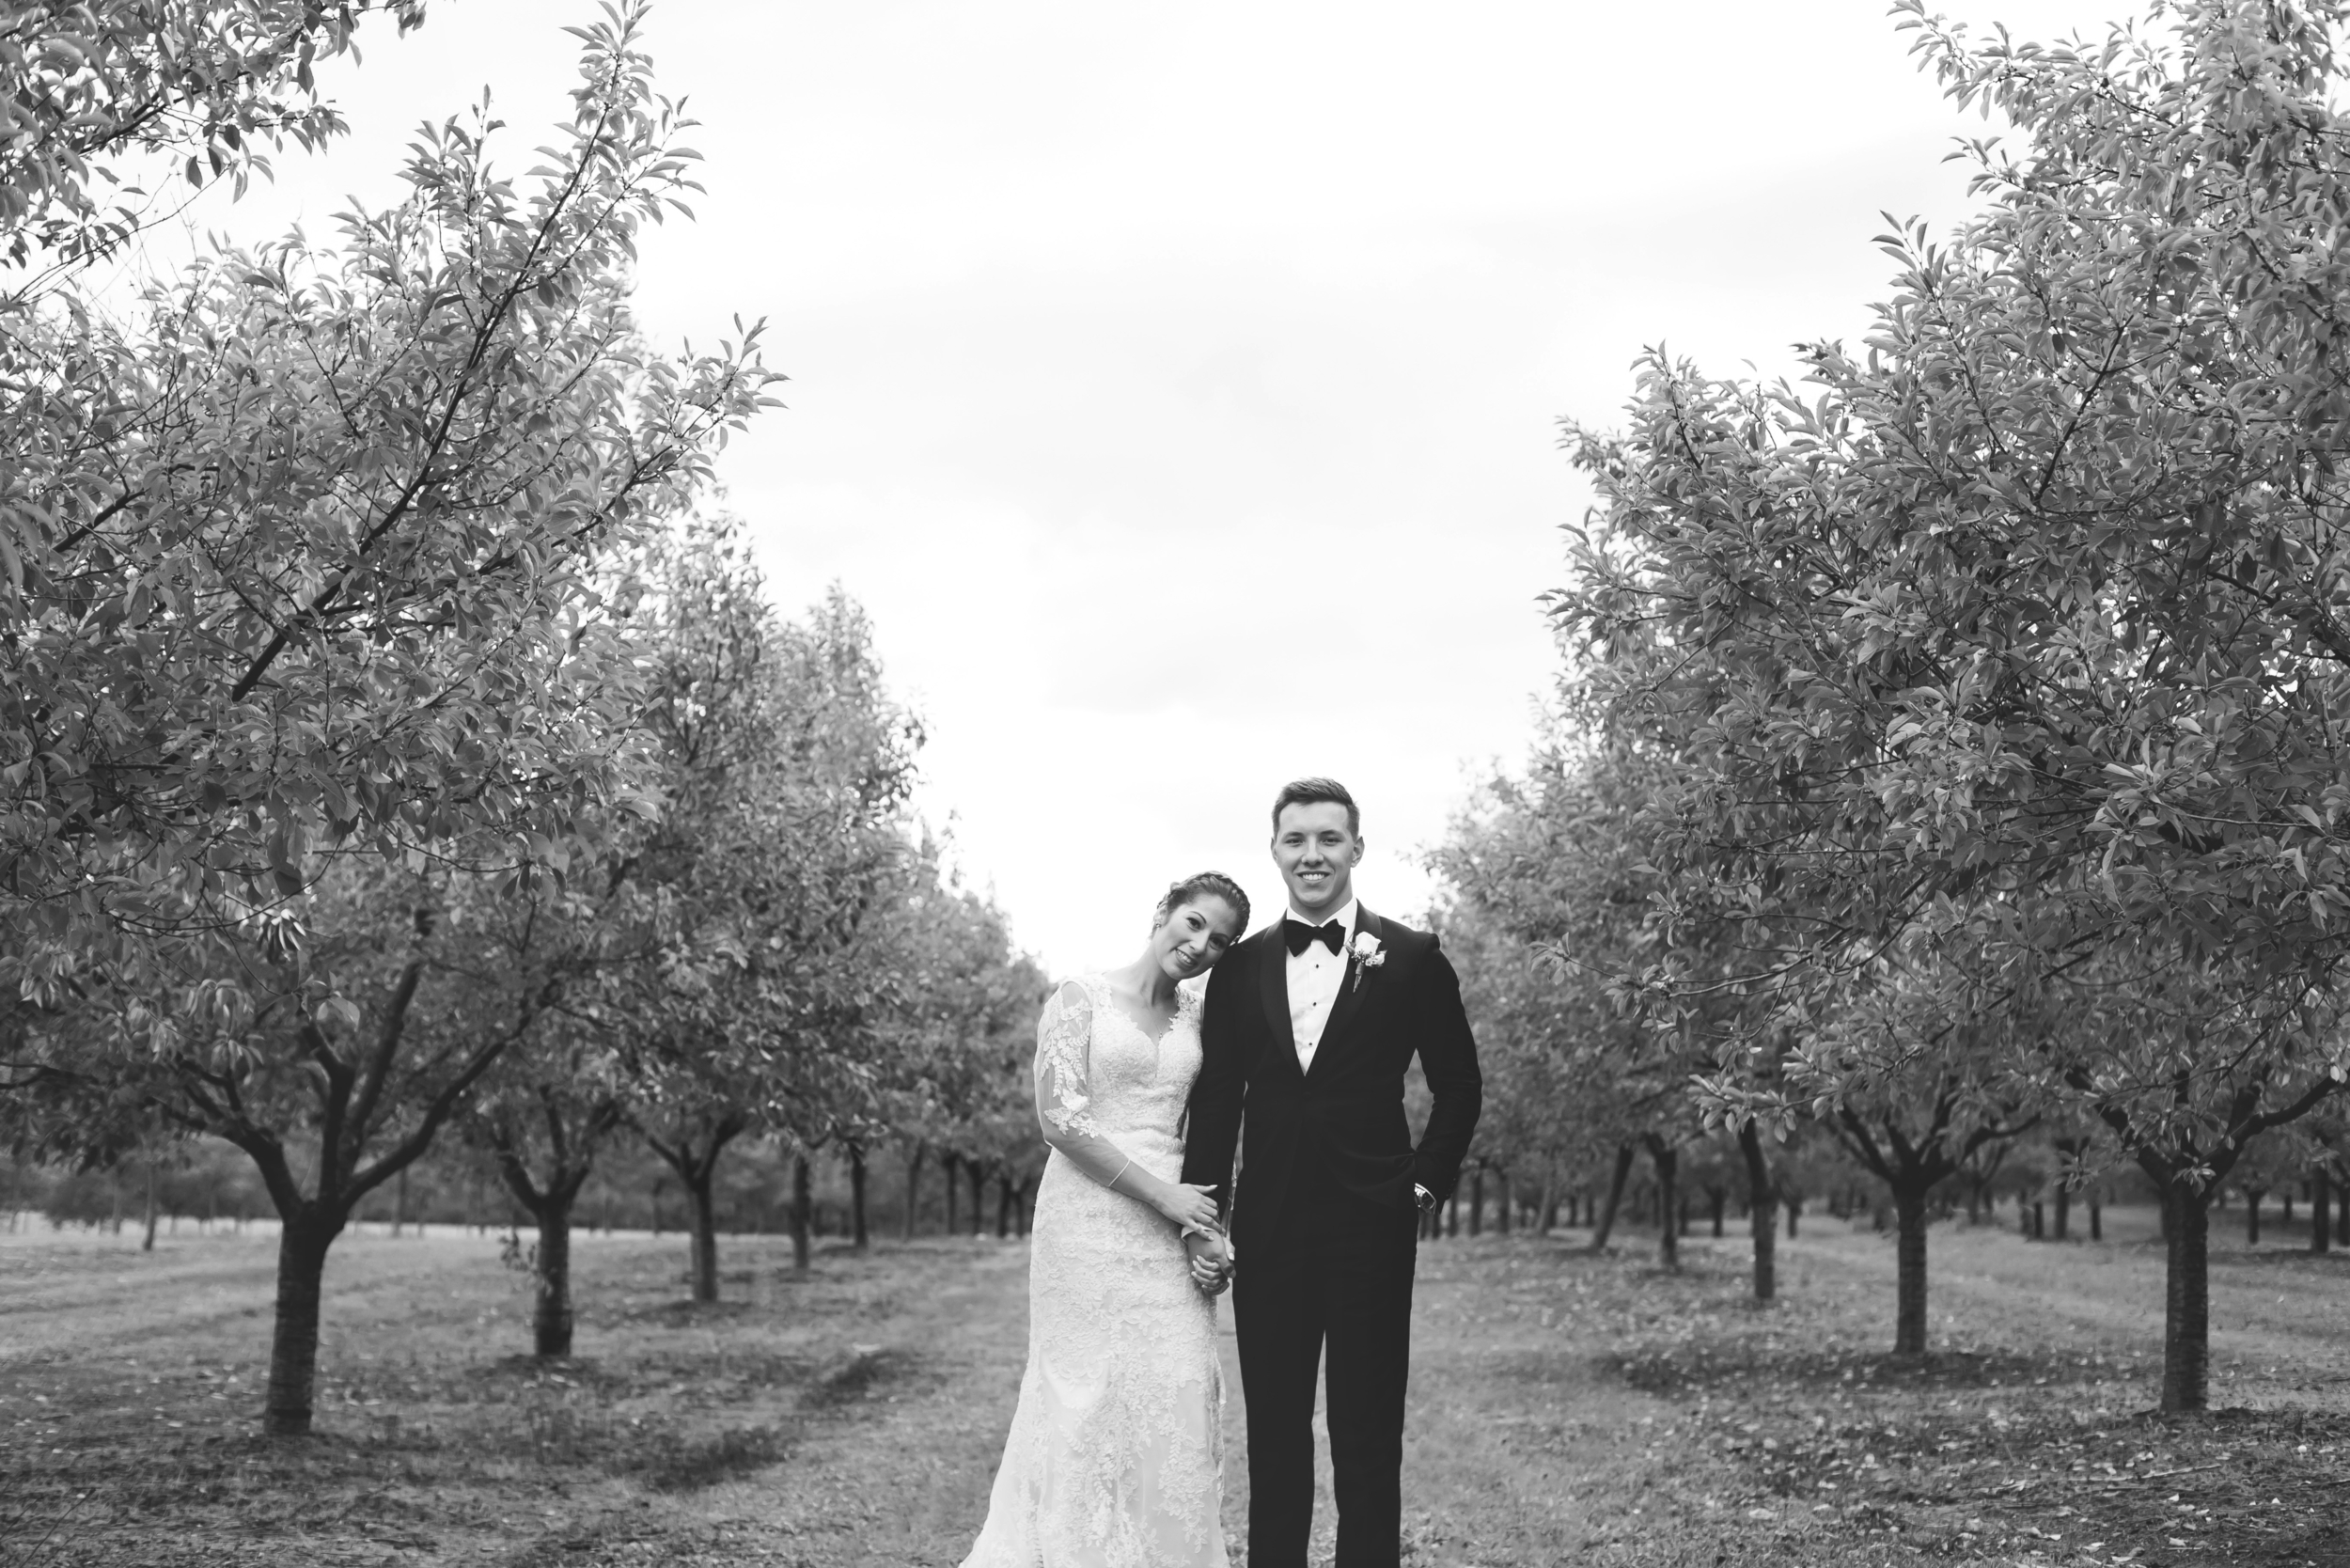 Wedding-Photos-Mount-Pleasant-Farm-Photographer-Wedding-Hamilton-GTA-Niagara-Oakville-Toronto-Moments-by-Lauren-Photography-Photo-Image-27.png